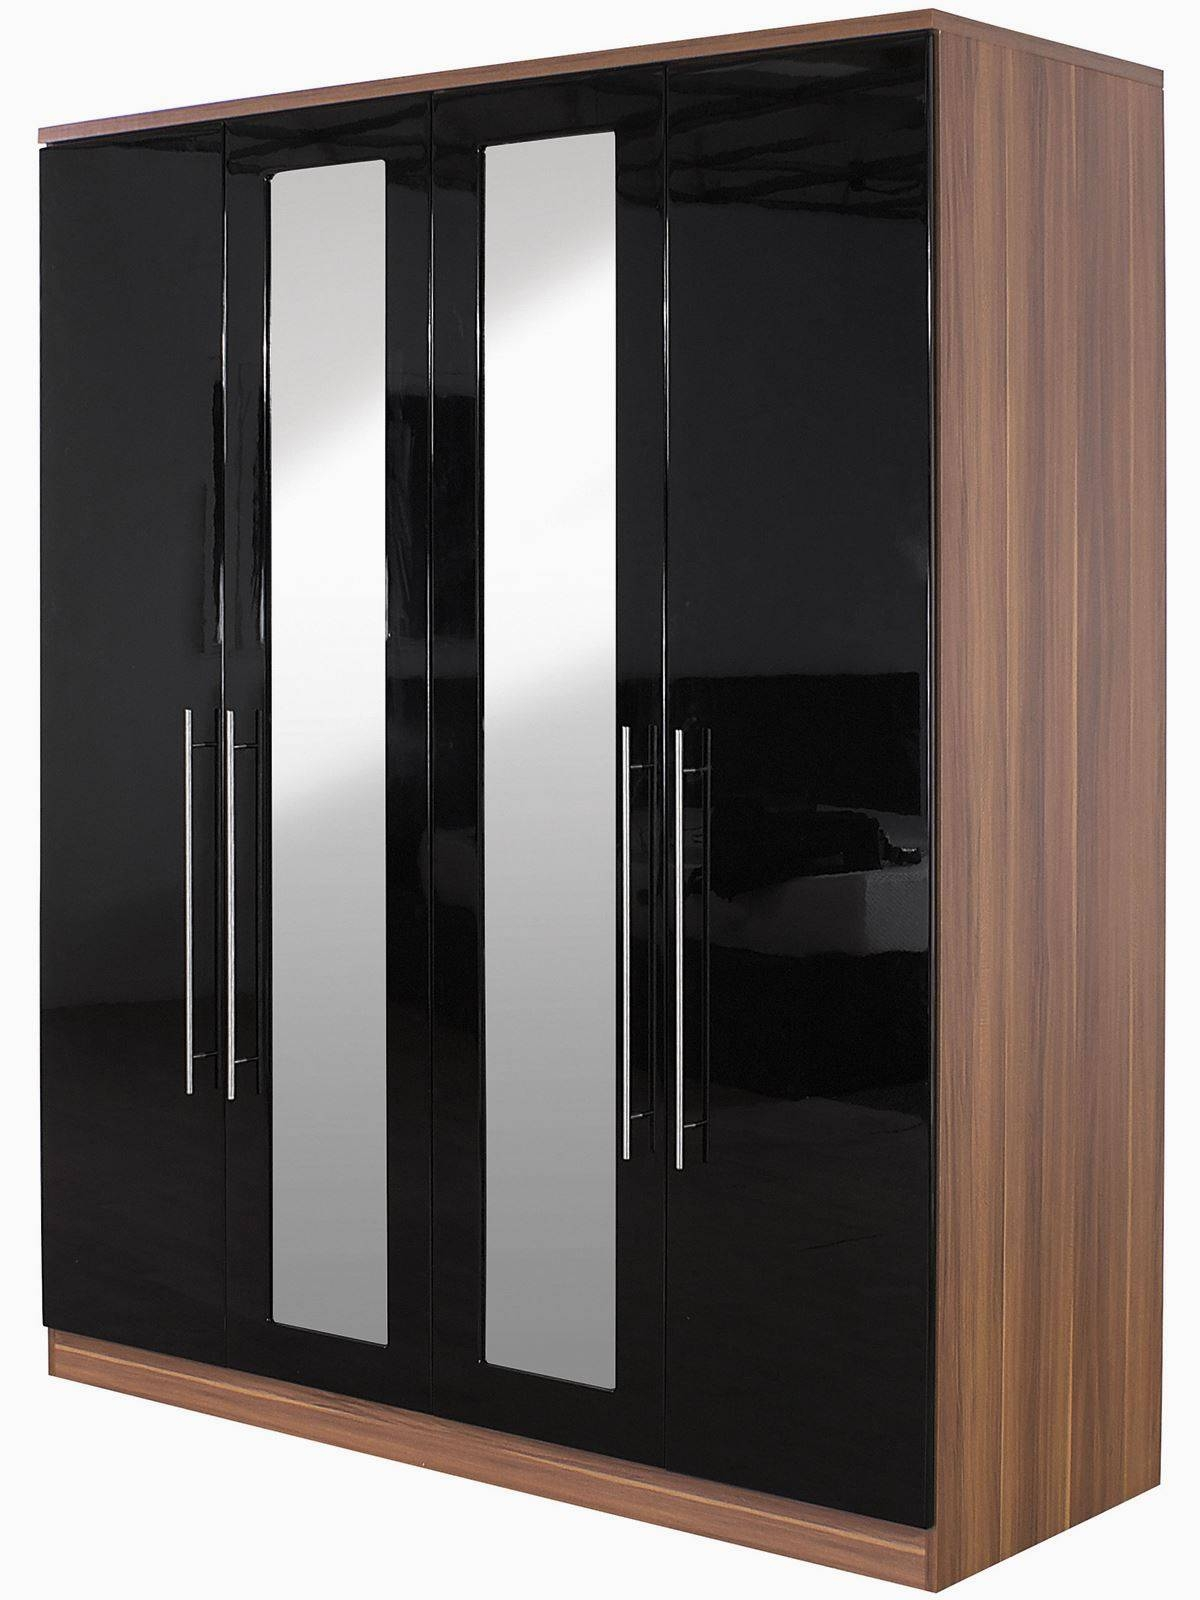 Keswick High Gloss Black & Walnut Bedside Chest Dressing Table intended for Black High Gloss Wardrobes (Image 10 of 15)